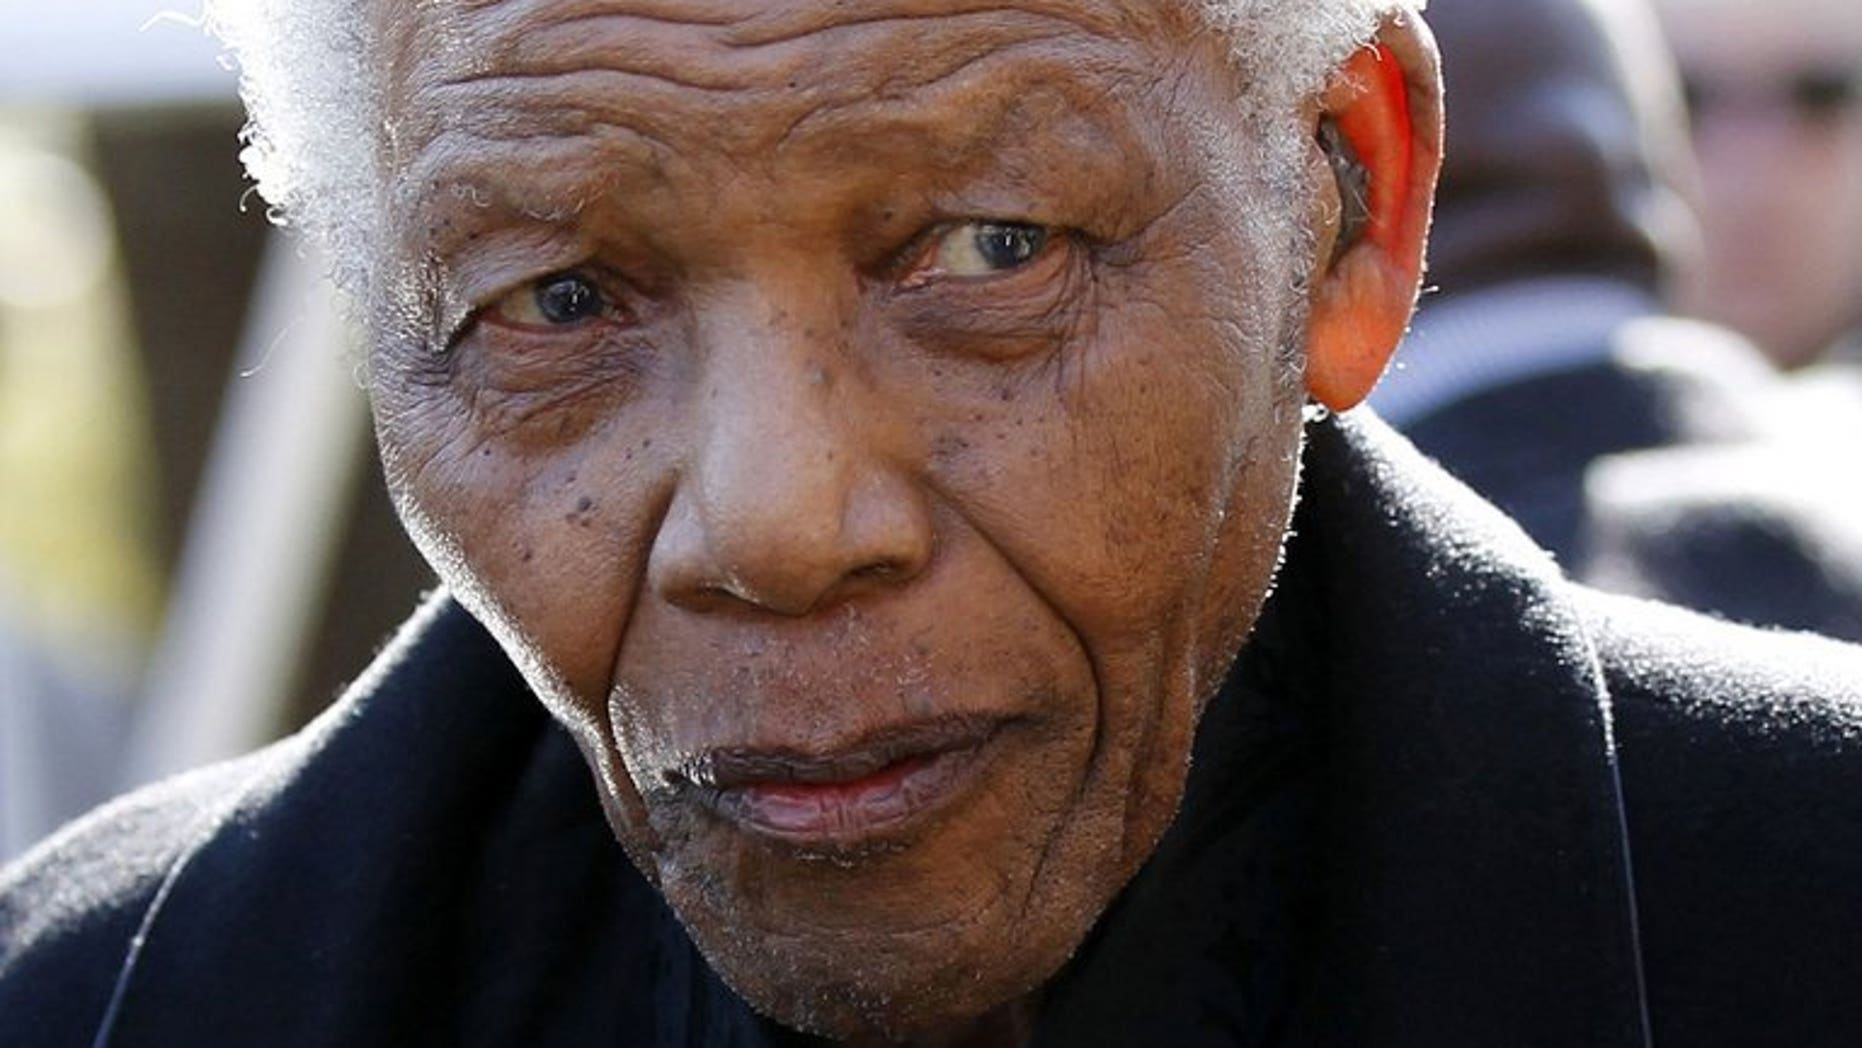 A picture taken on June 17, 2010 shows global icon Nelson Mandela arriving for a funeral, just north of Johannesburg. Mandela who celebrated his 95th birthday this week remained in hospital on Saturday, six weeks after he was admitted for treatment for a lung illness.